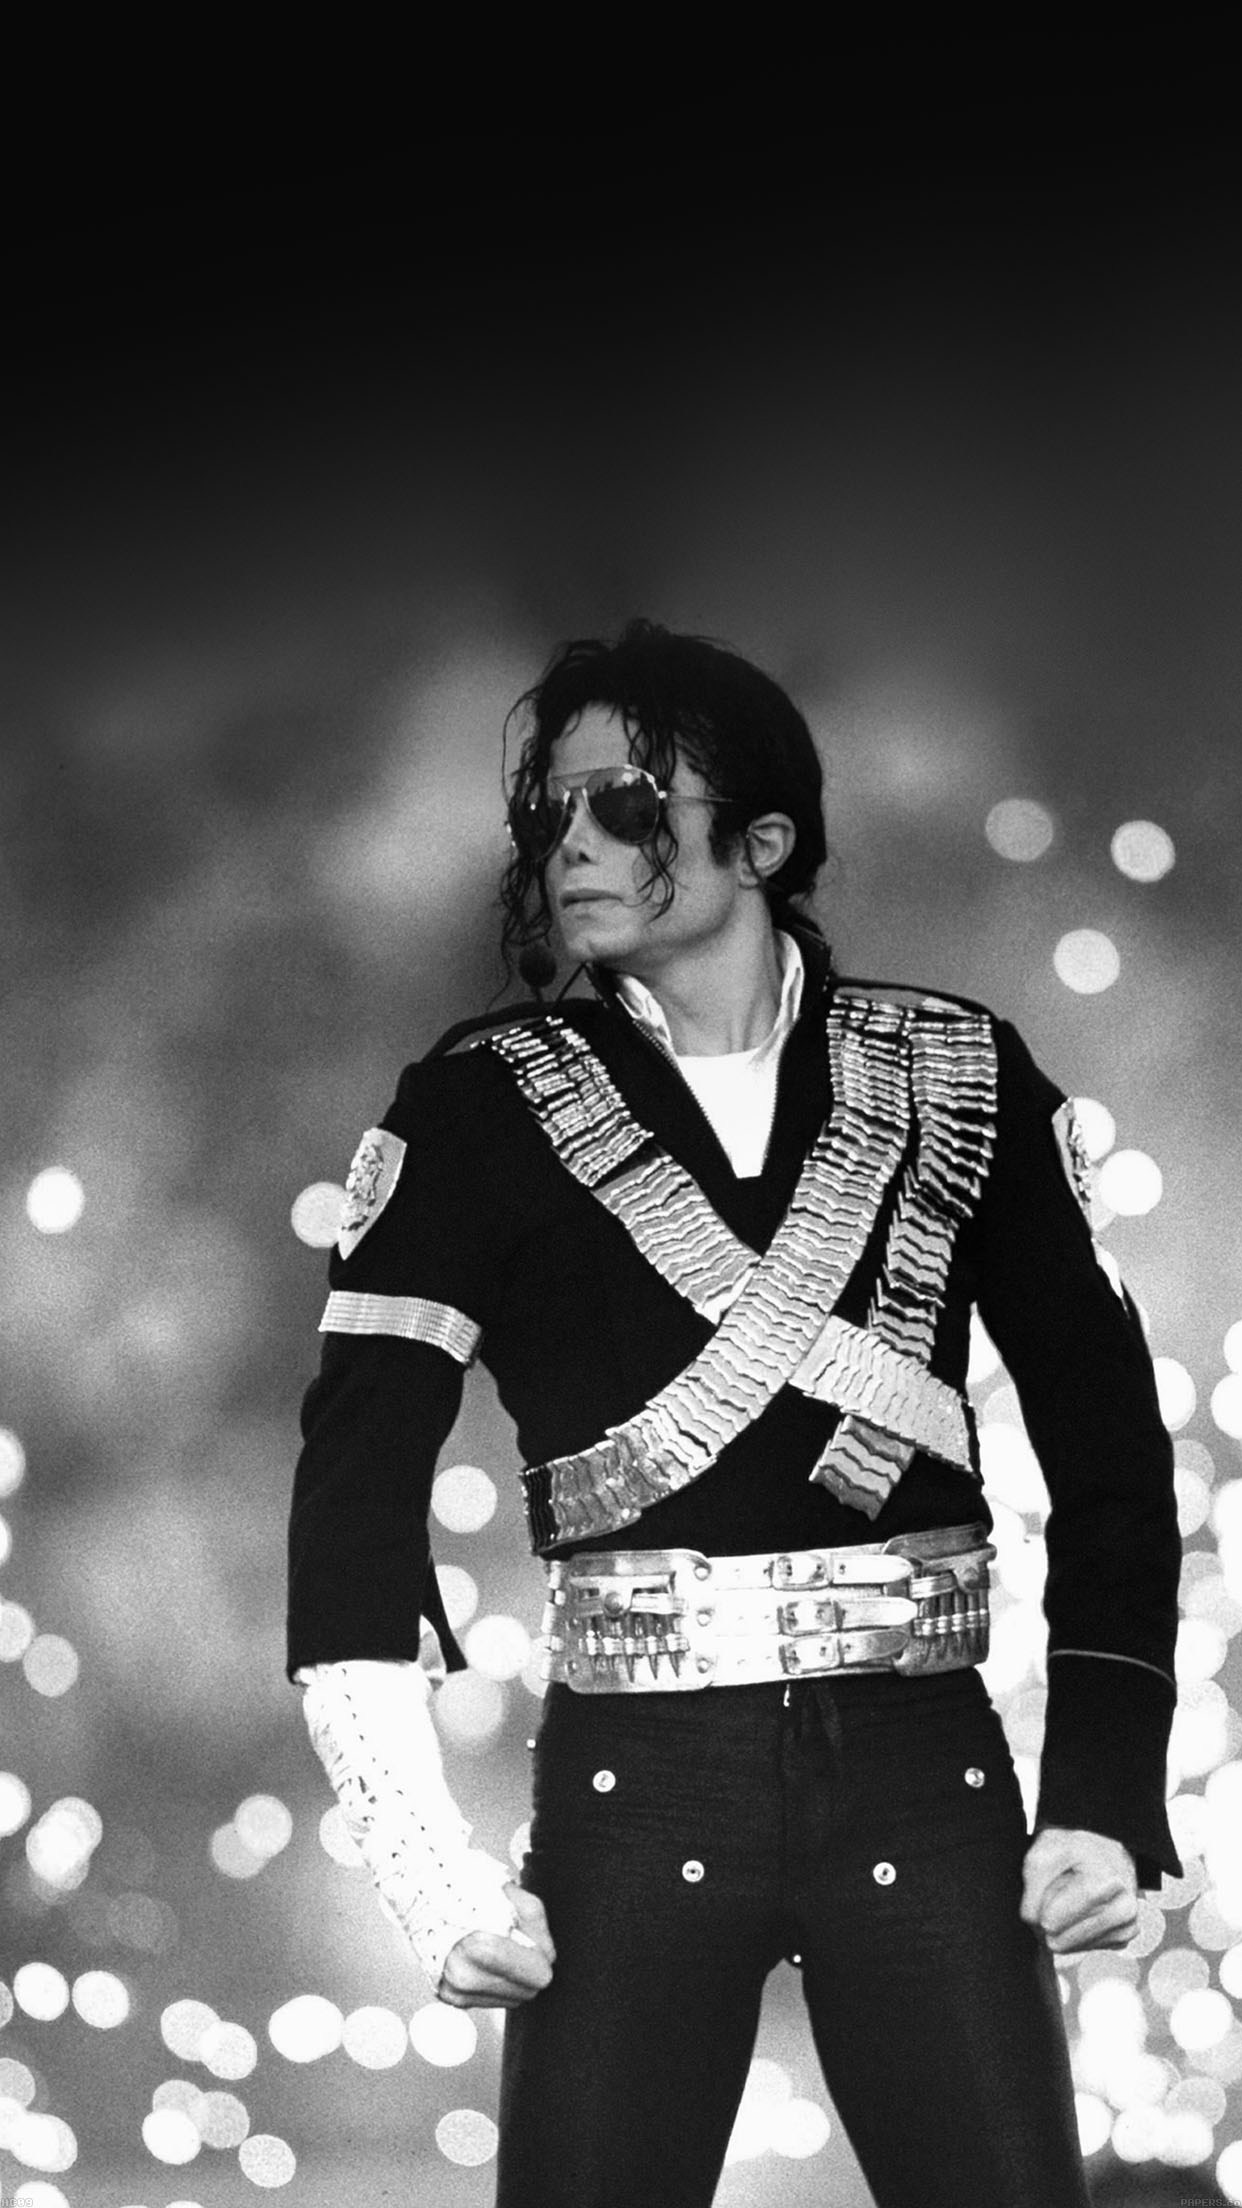 Michael Jackson Hd Wallpapers For Iphone 6 For Iphone X Iphonexpapers